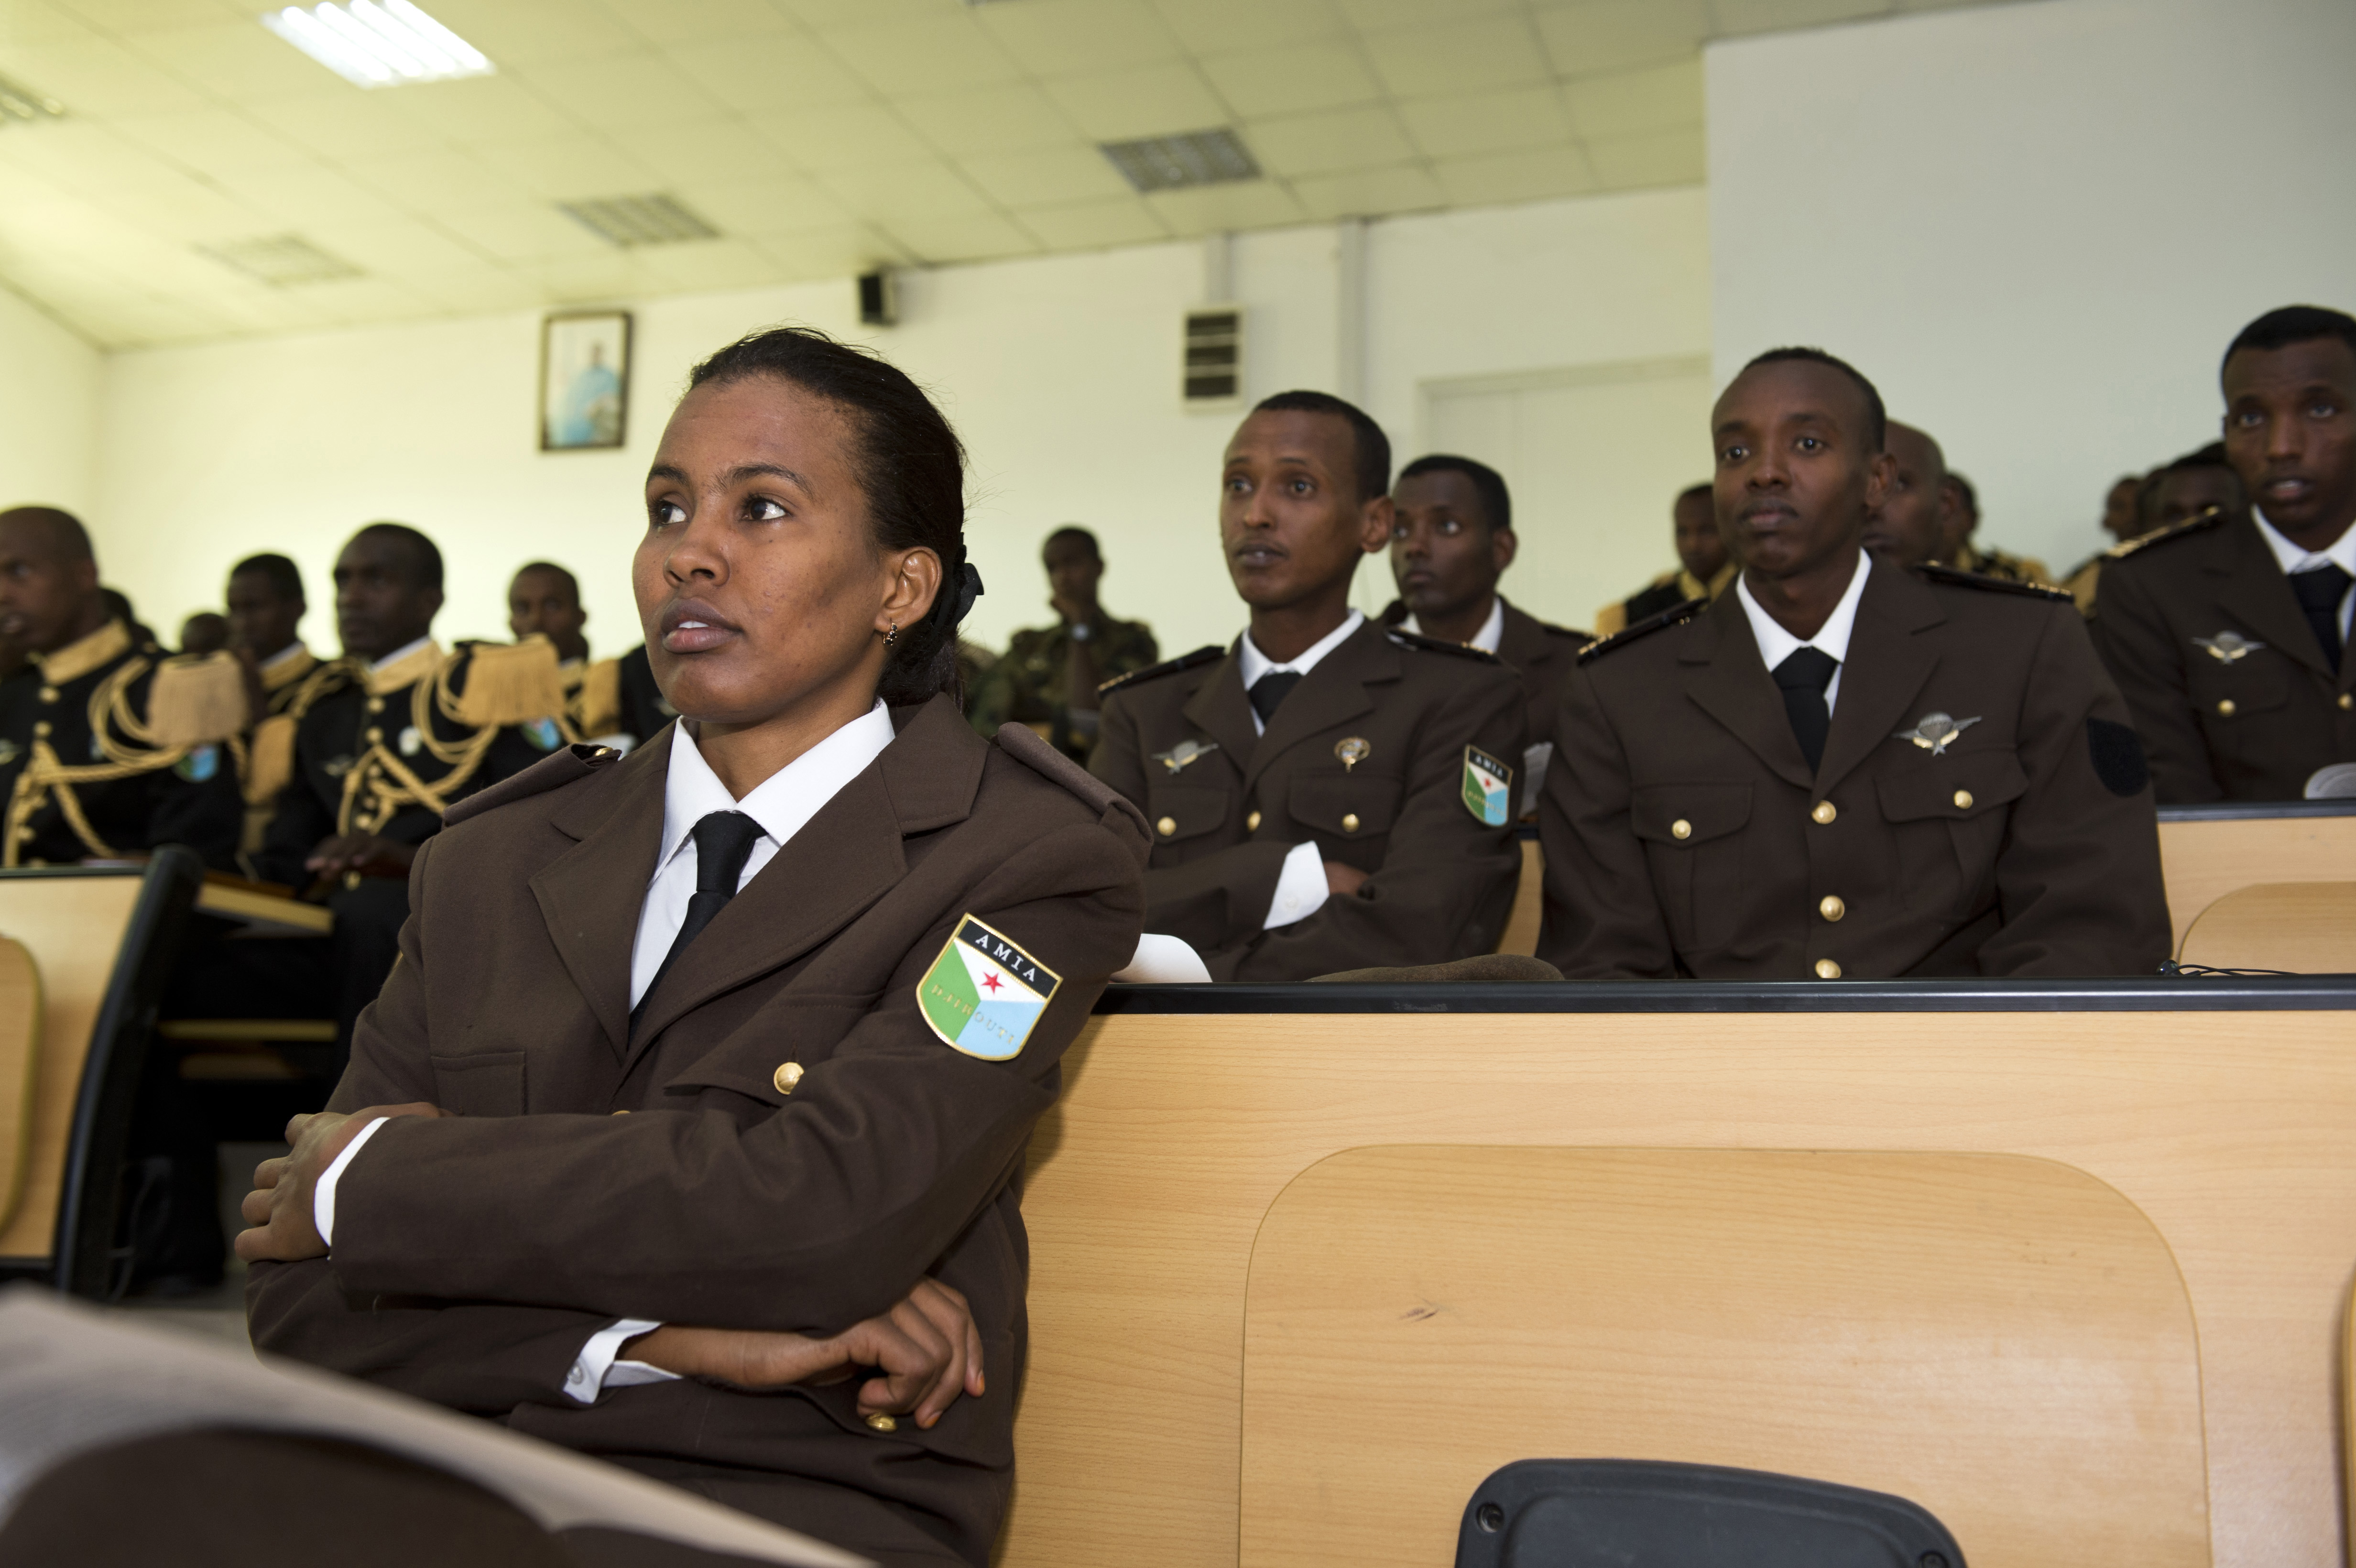 Djiboutian military and law enforcement cadets attend briefings at the first Geo-Strategy Meeting held at the Joint Military Academy of Arta, Arta, Djibouti, April 20, 2015. The meeting's focus was on the effects military and police actions can have on civilian populations, and the need to mitigate these affects through planning and preparation. (U.S. Air Force photo by Staff Sgt. Nathan Maysonet)